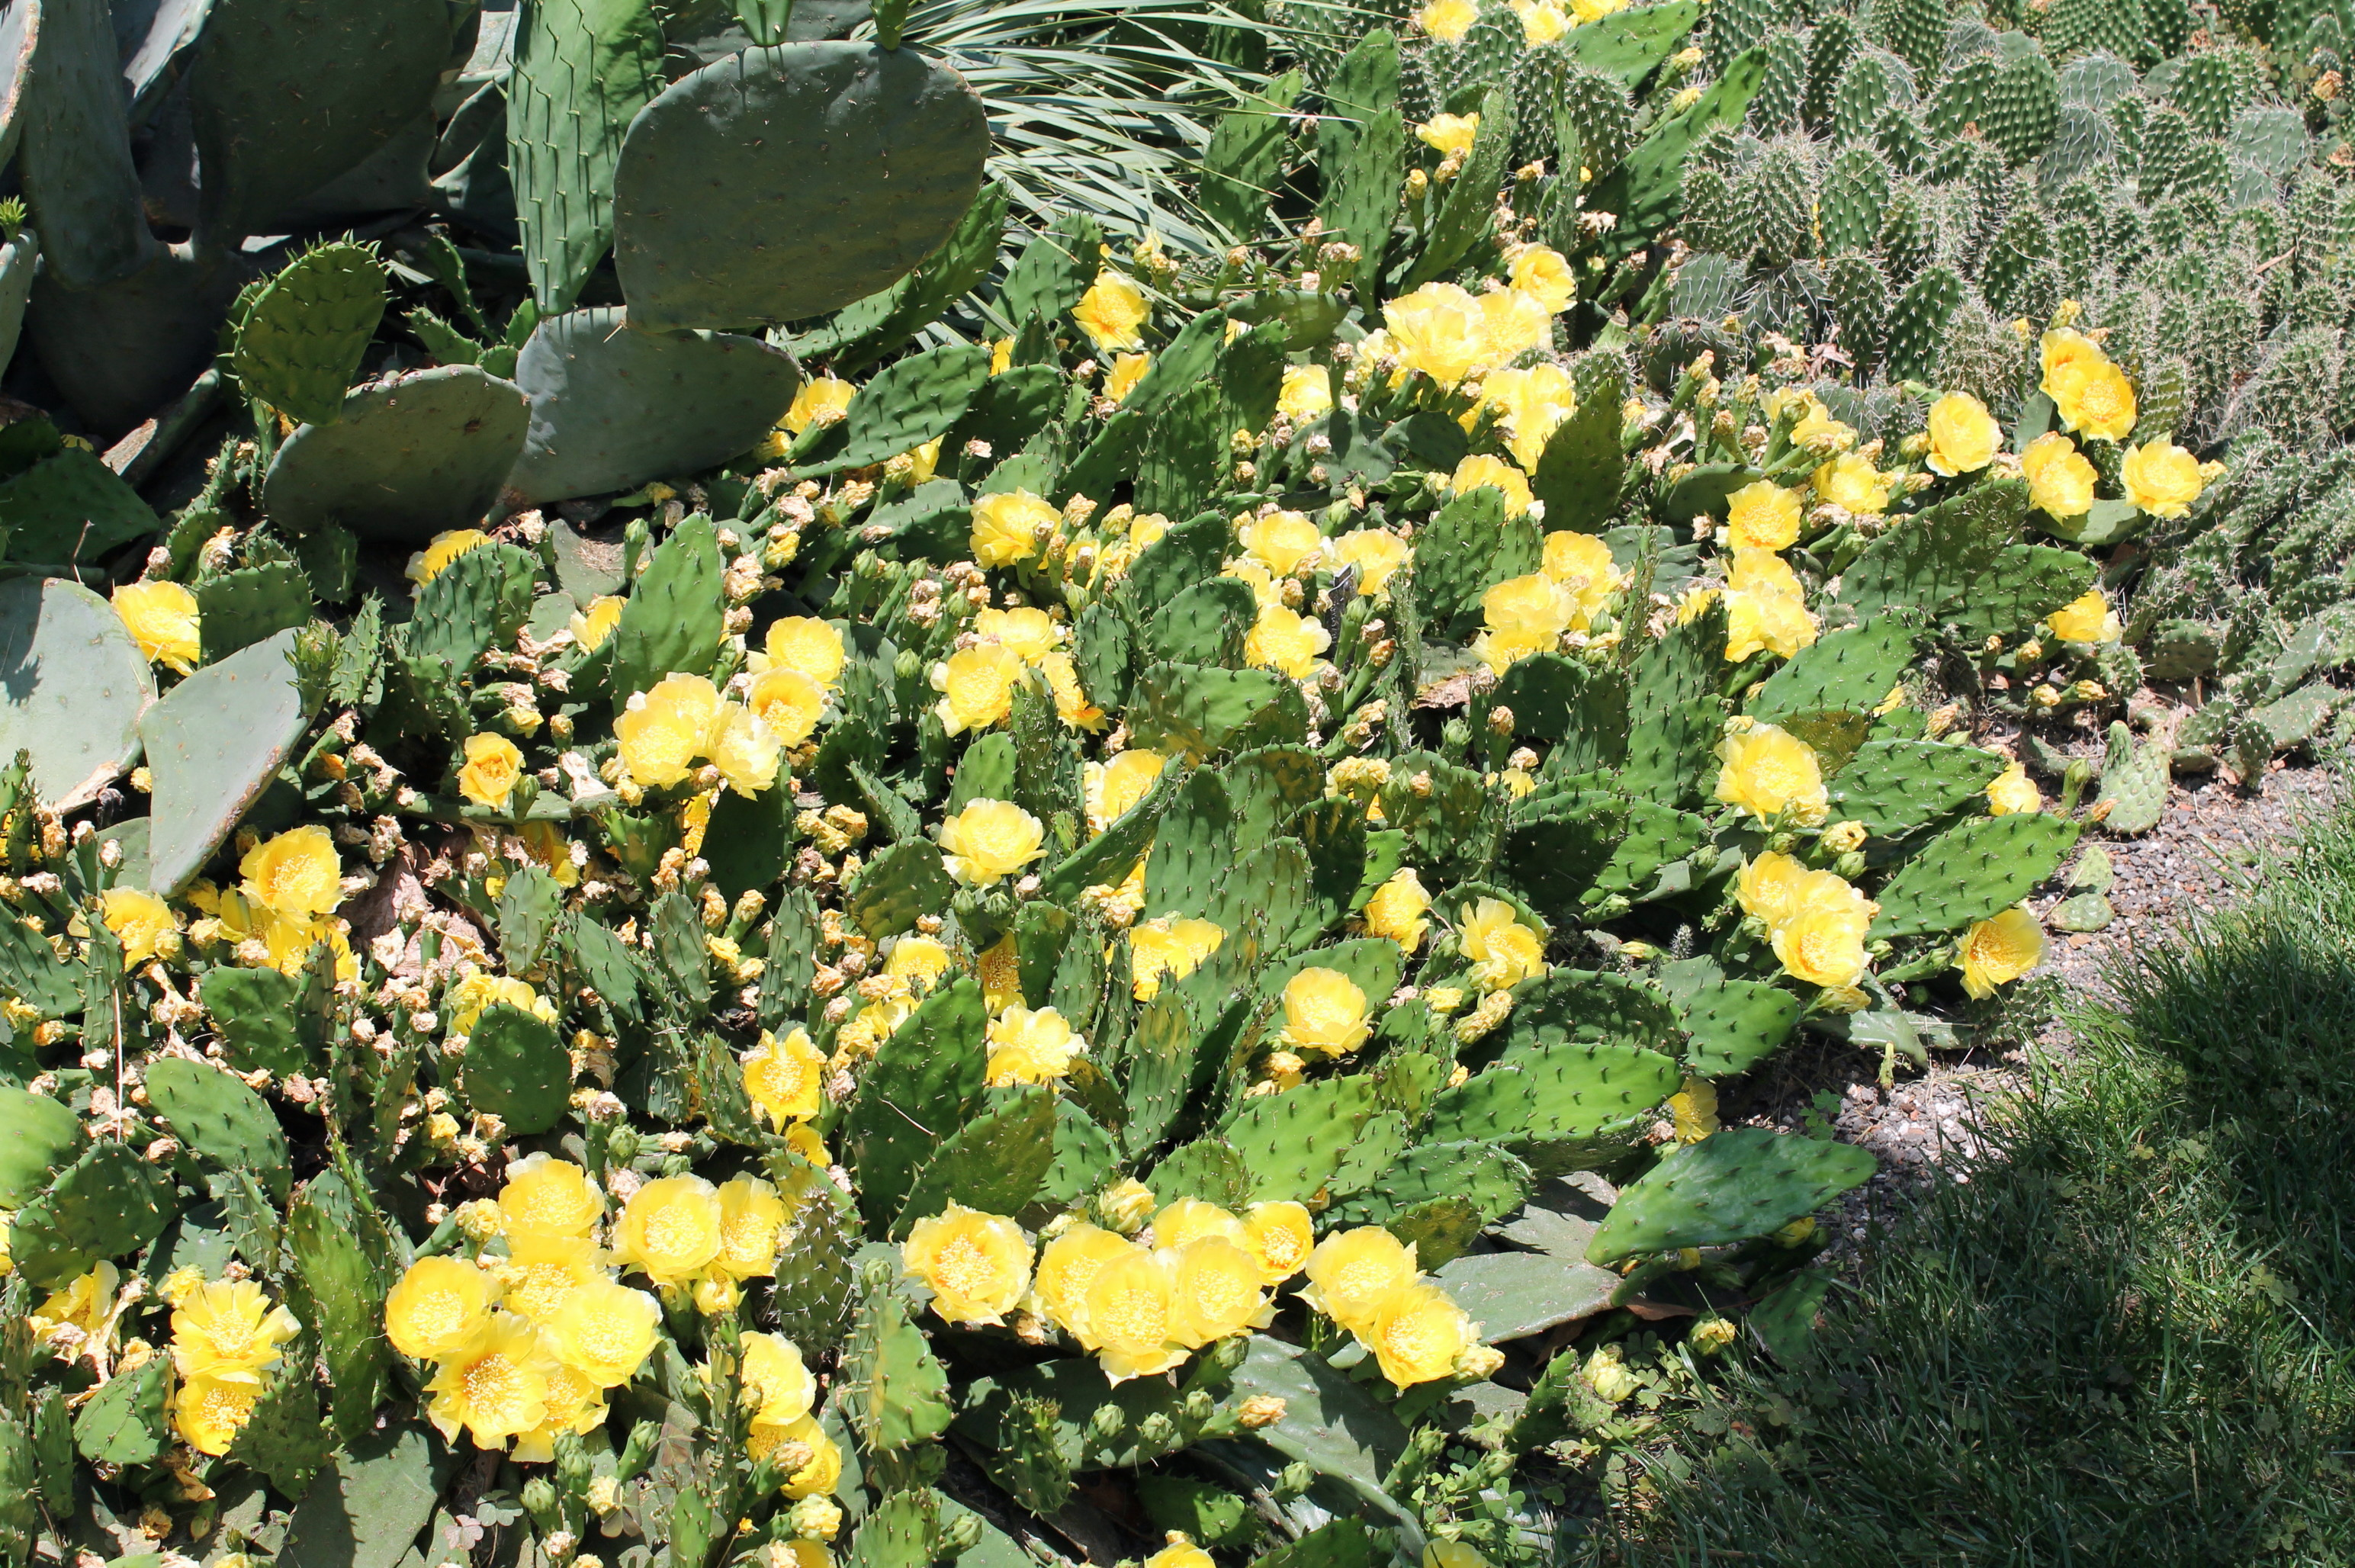 Bottom 10 perennial flowers garden housecalls prickly pear cactus native pretty in bloom but the thorns are weapons mightylinksfo